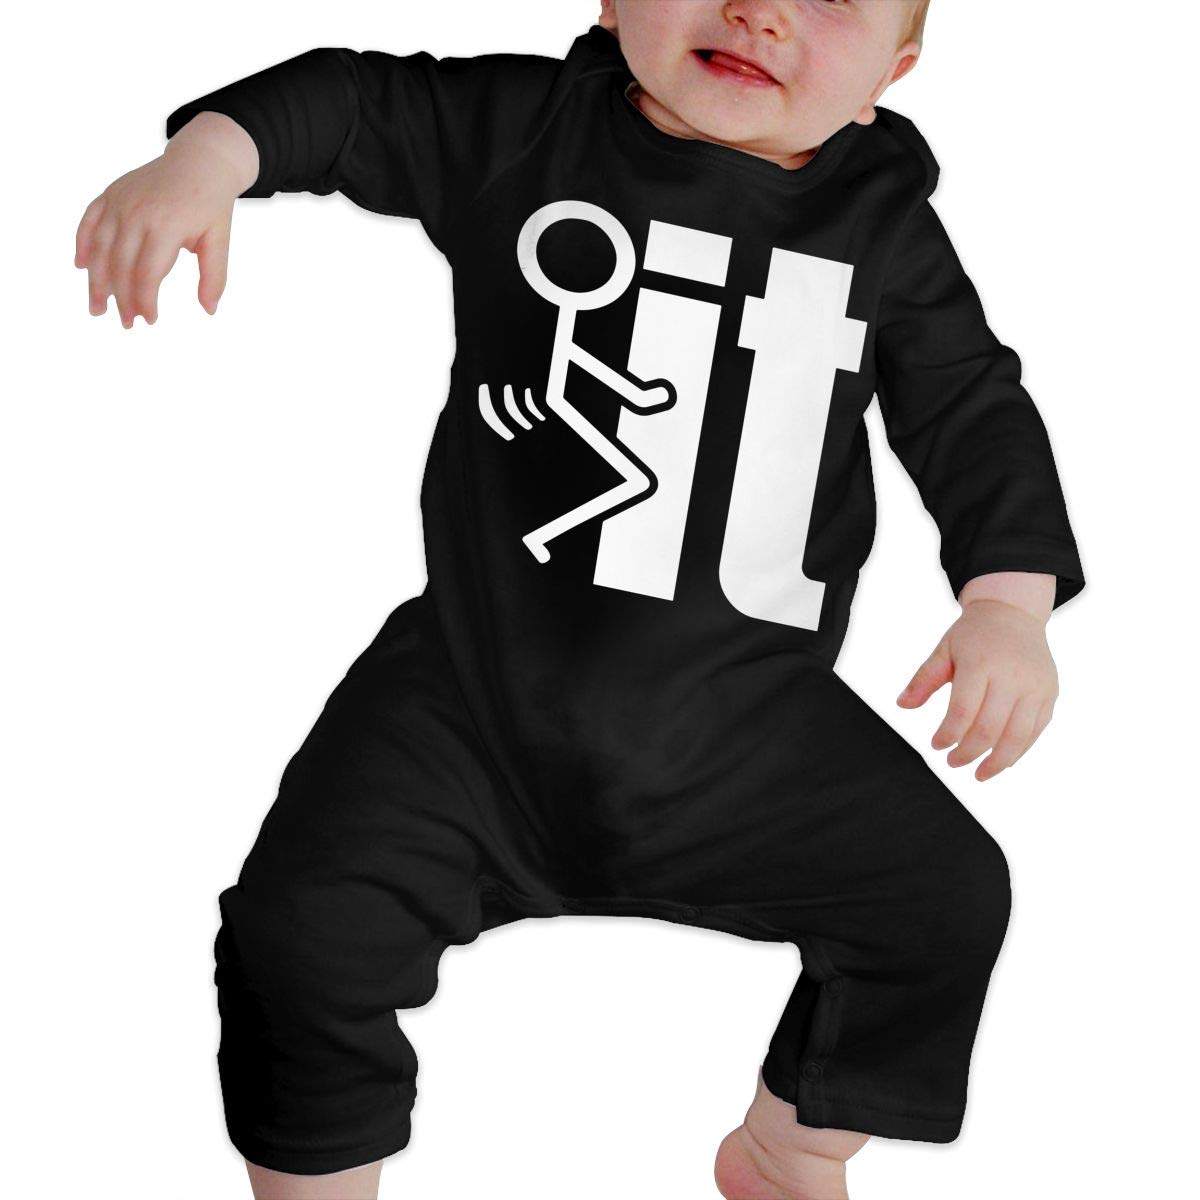 UGFGF-S3 Fuck It Baby Girl Long Sleeve Romper Jumpsuit Baby Clothes